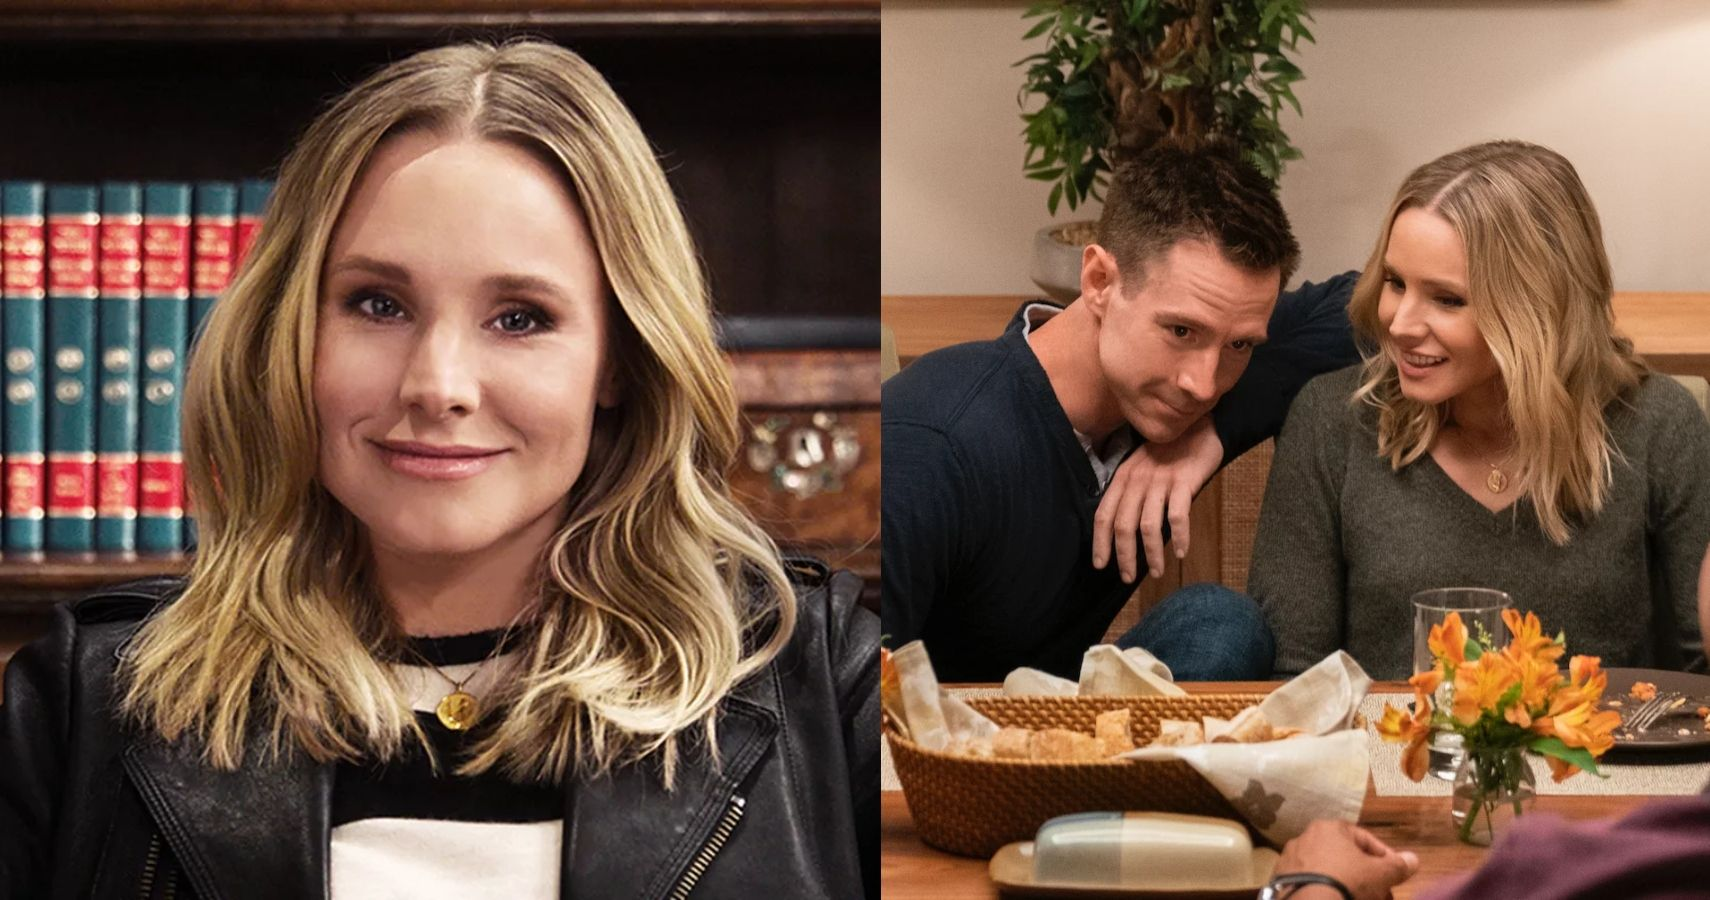 Veronica Mars: 10 Things That Make No Sense About The Detective Drama